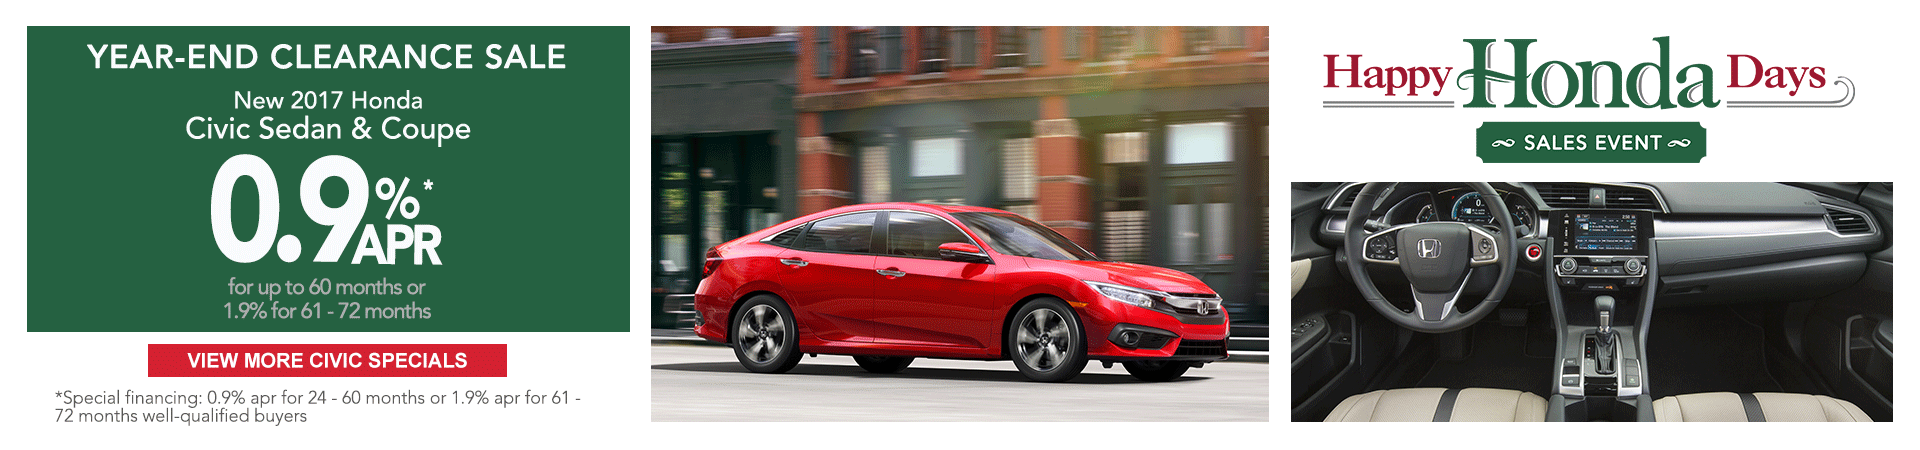 2017 Honda Civic Happy Honda Days Sale